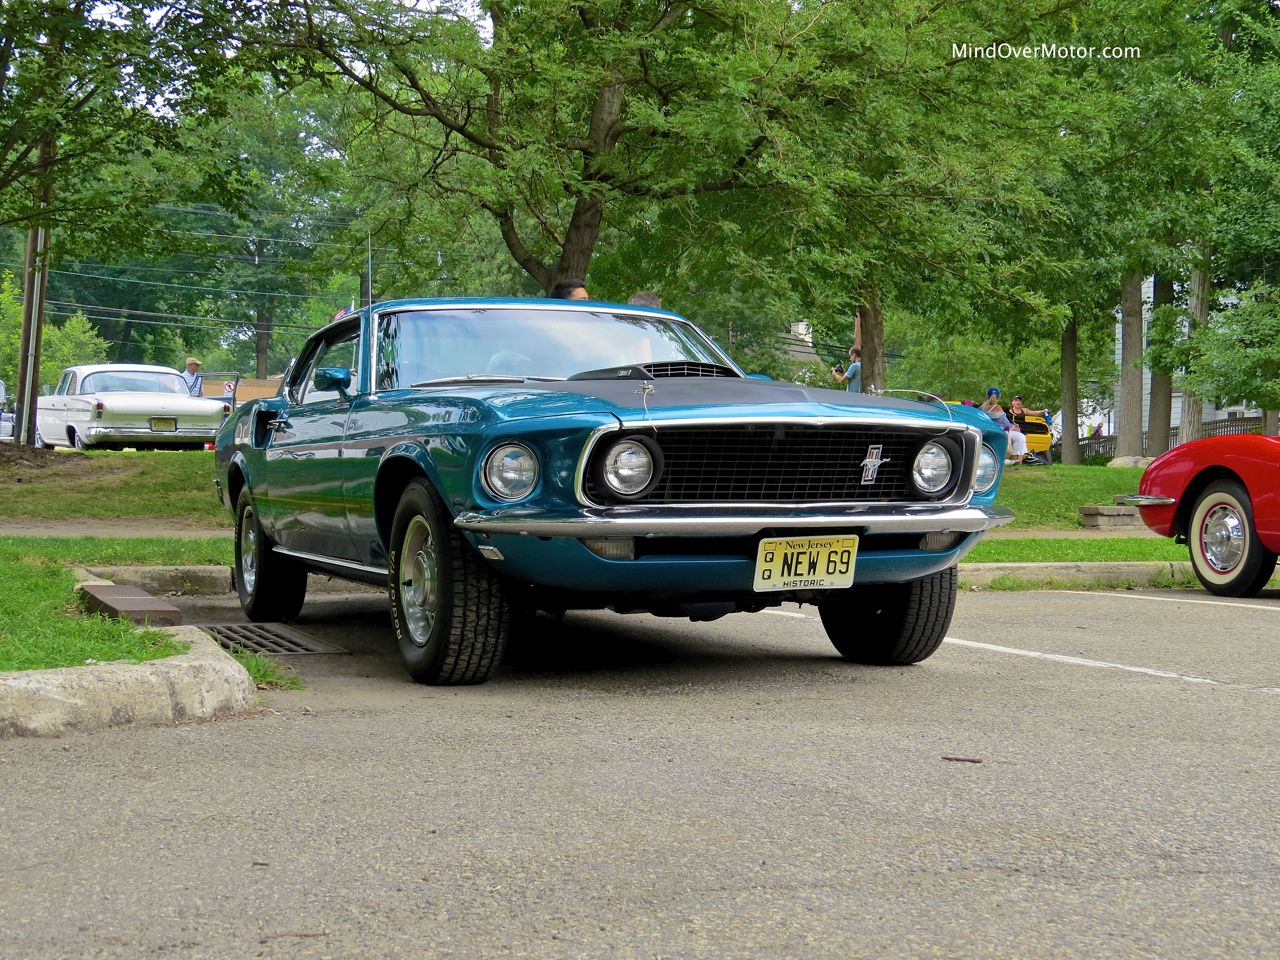 1969 Ford Mustang Mach 1 Front